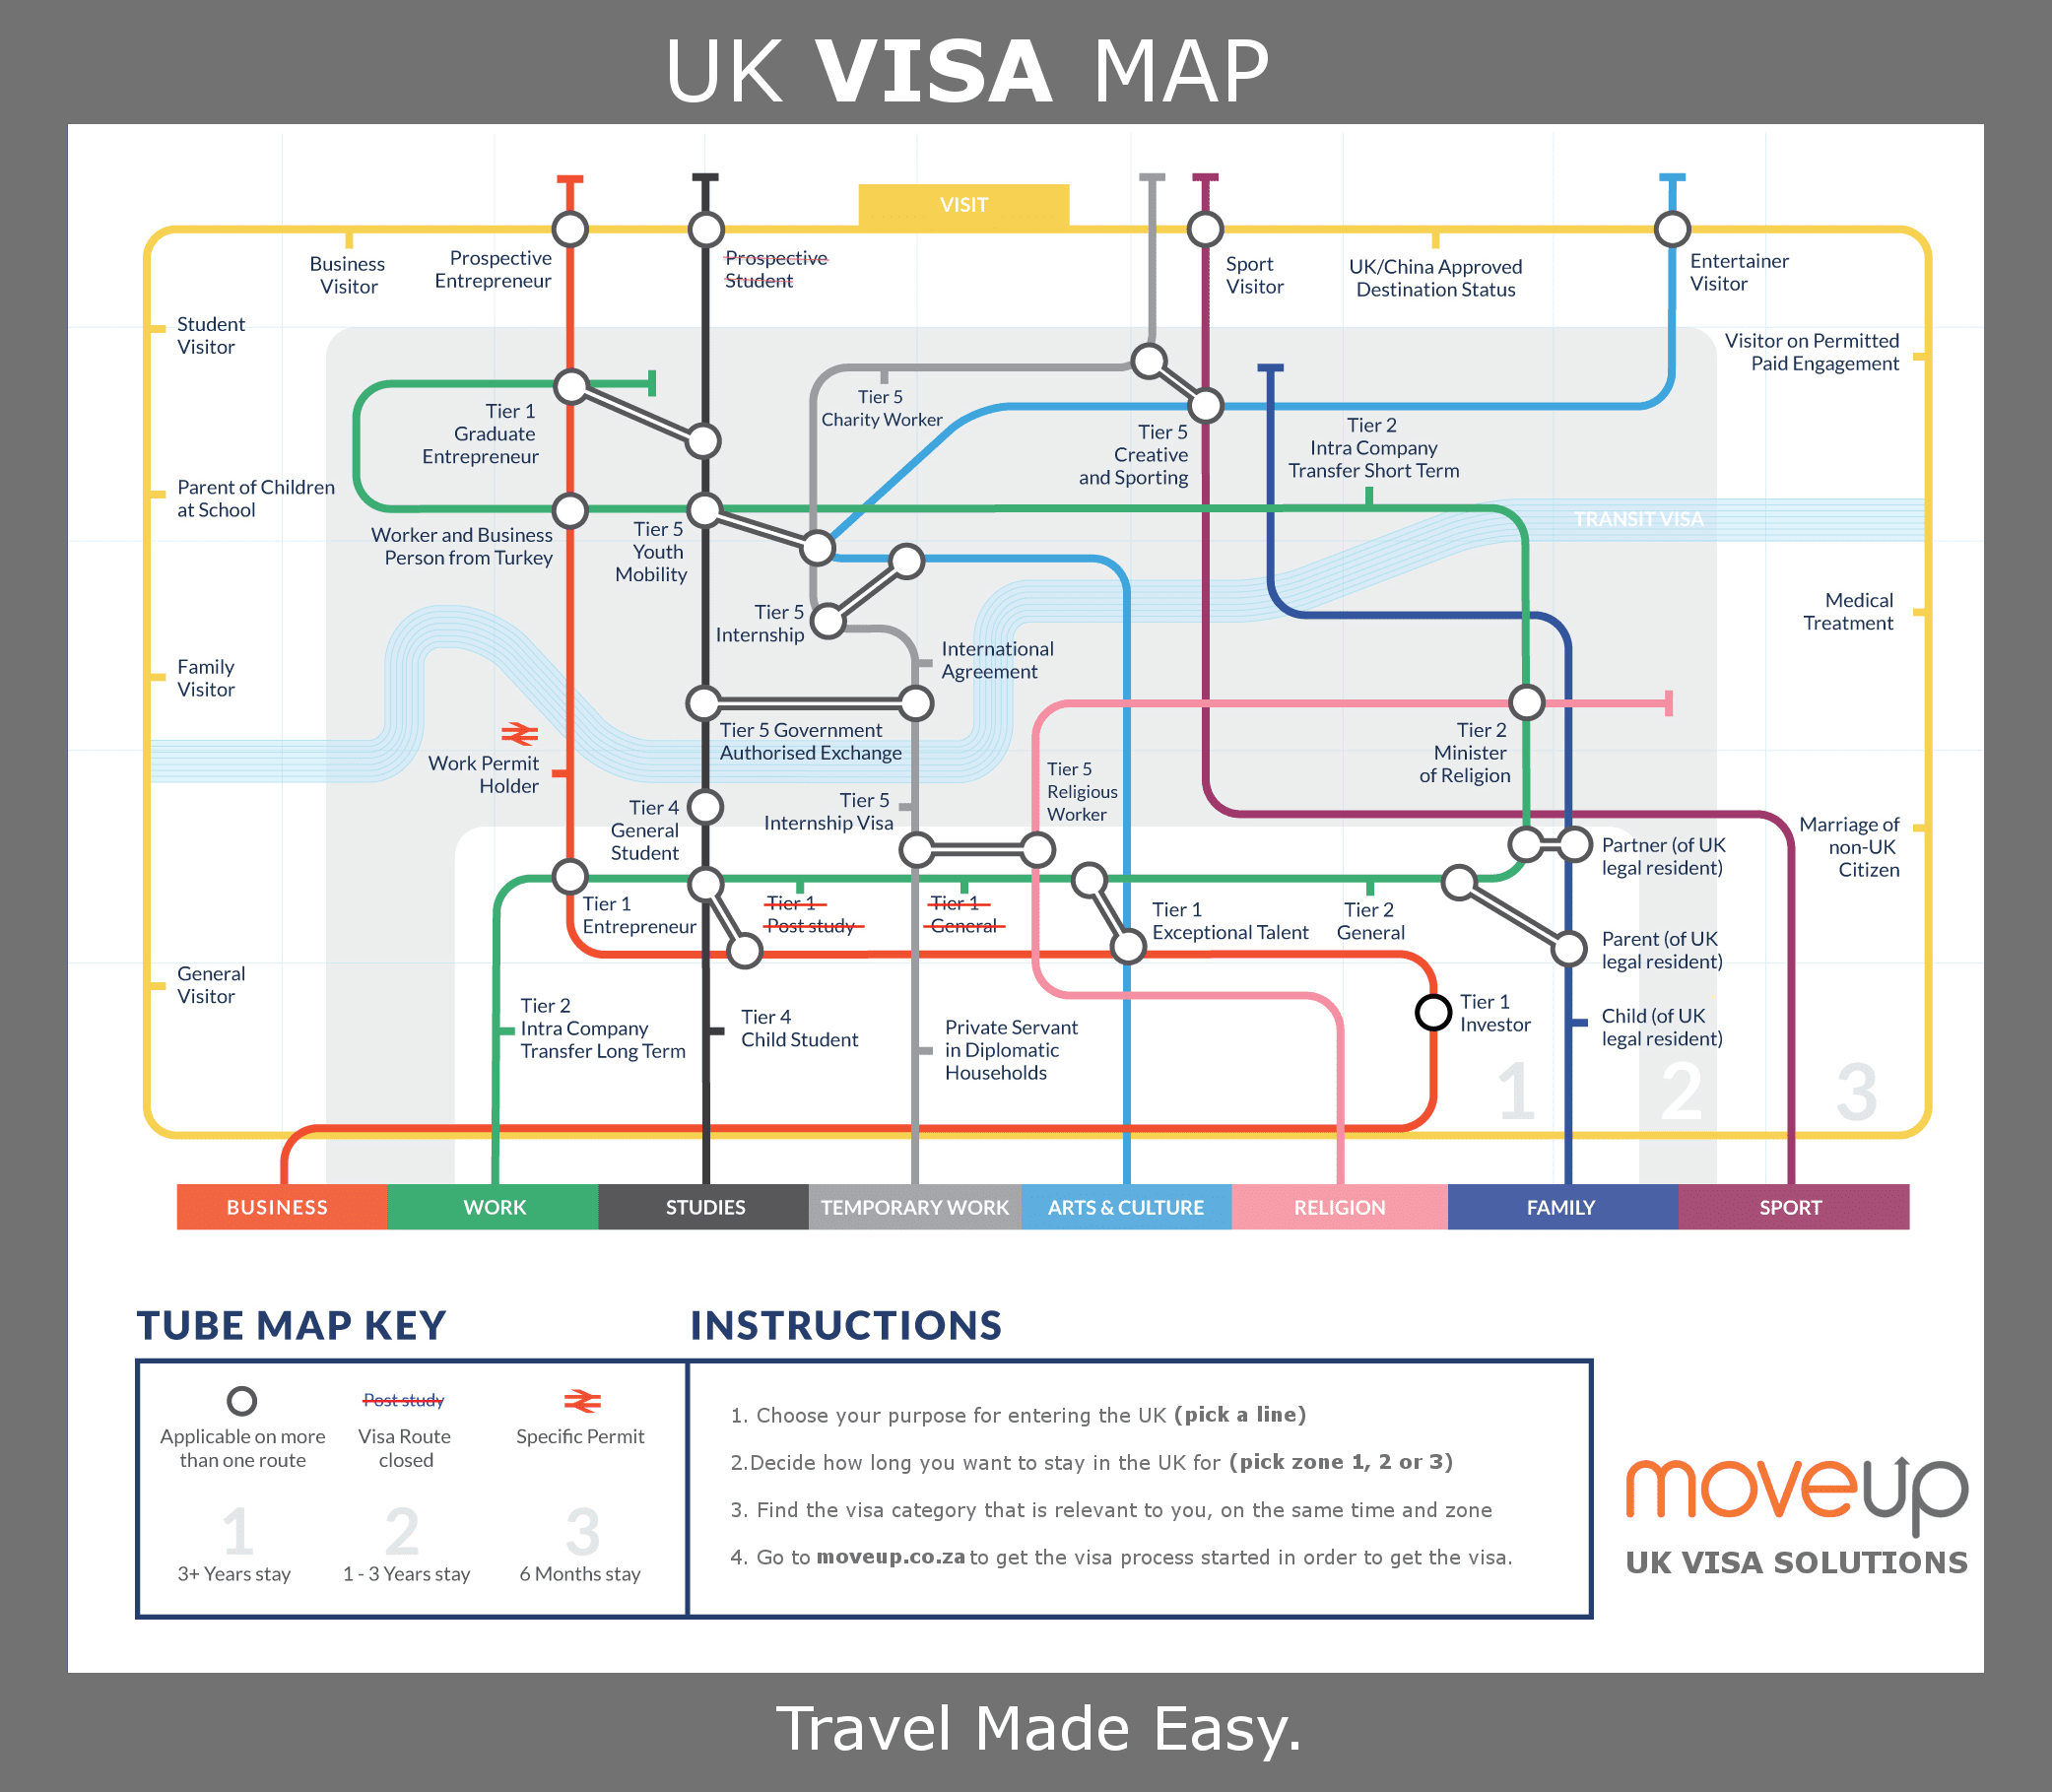 moveup-visa-map